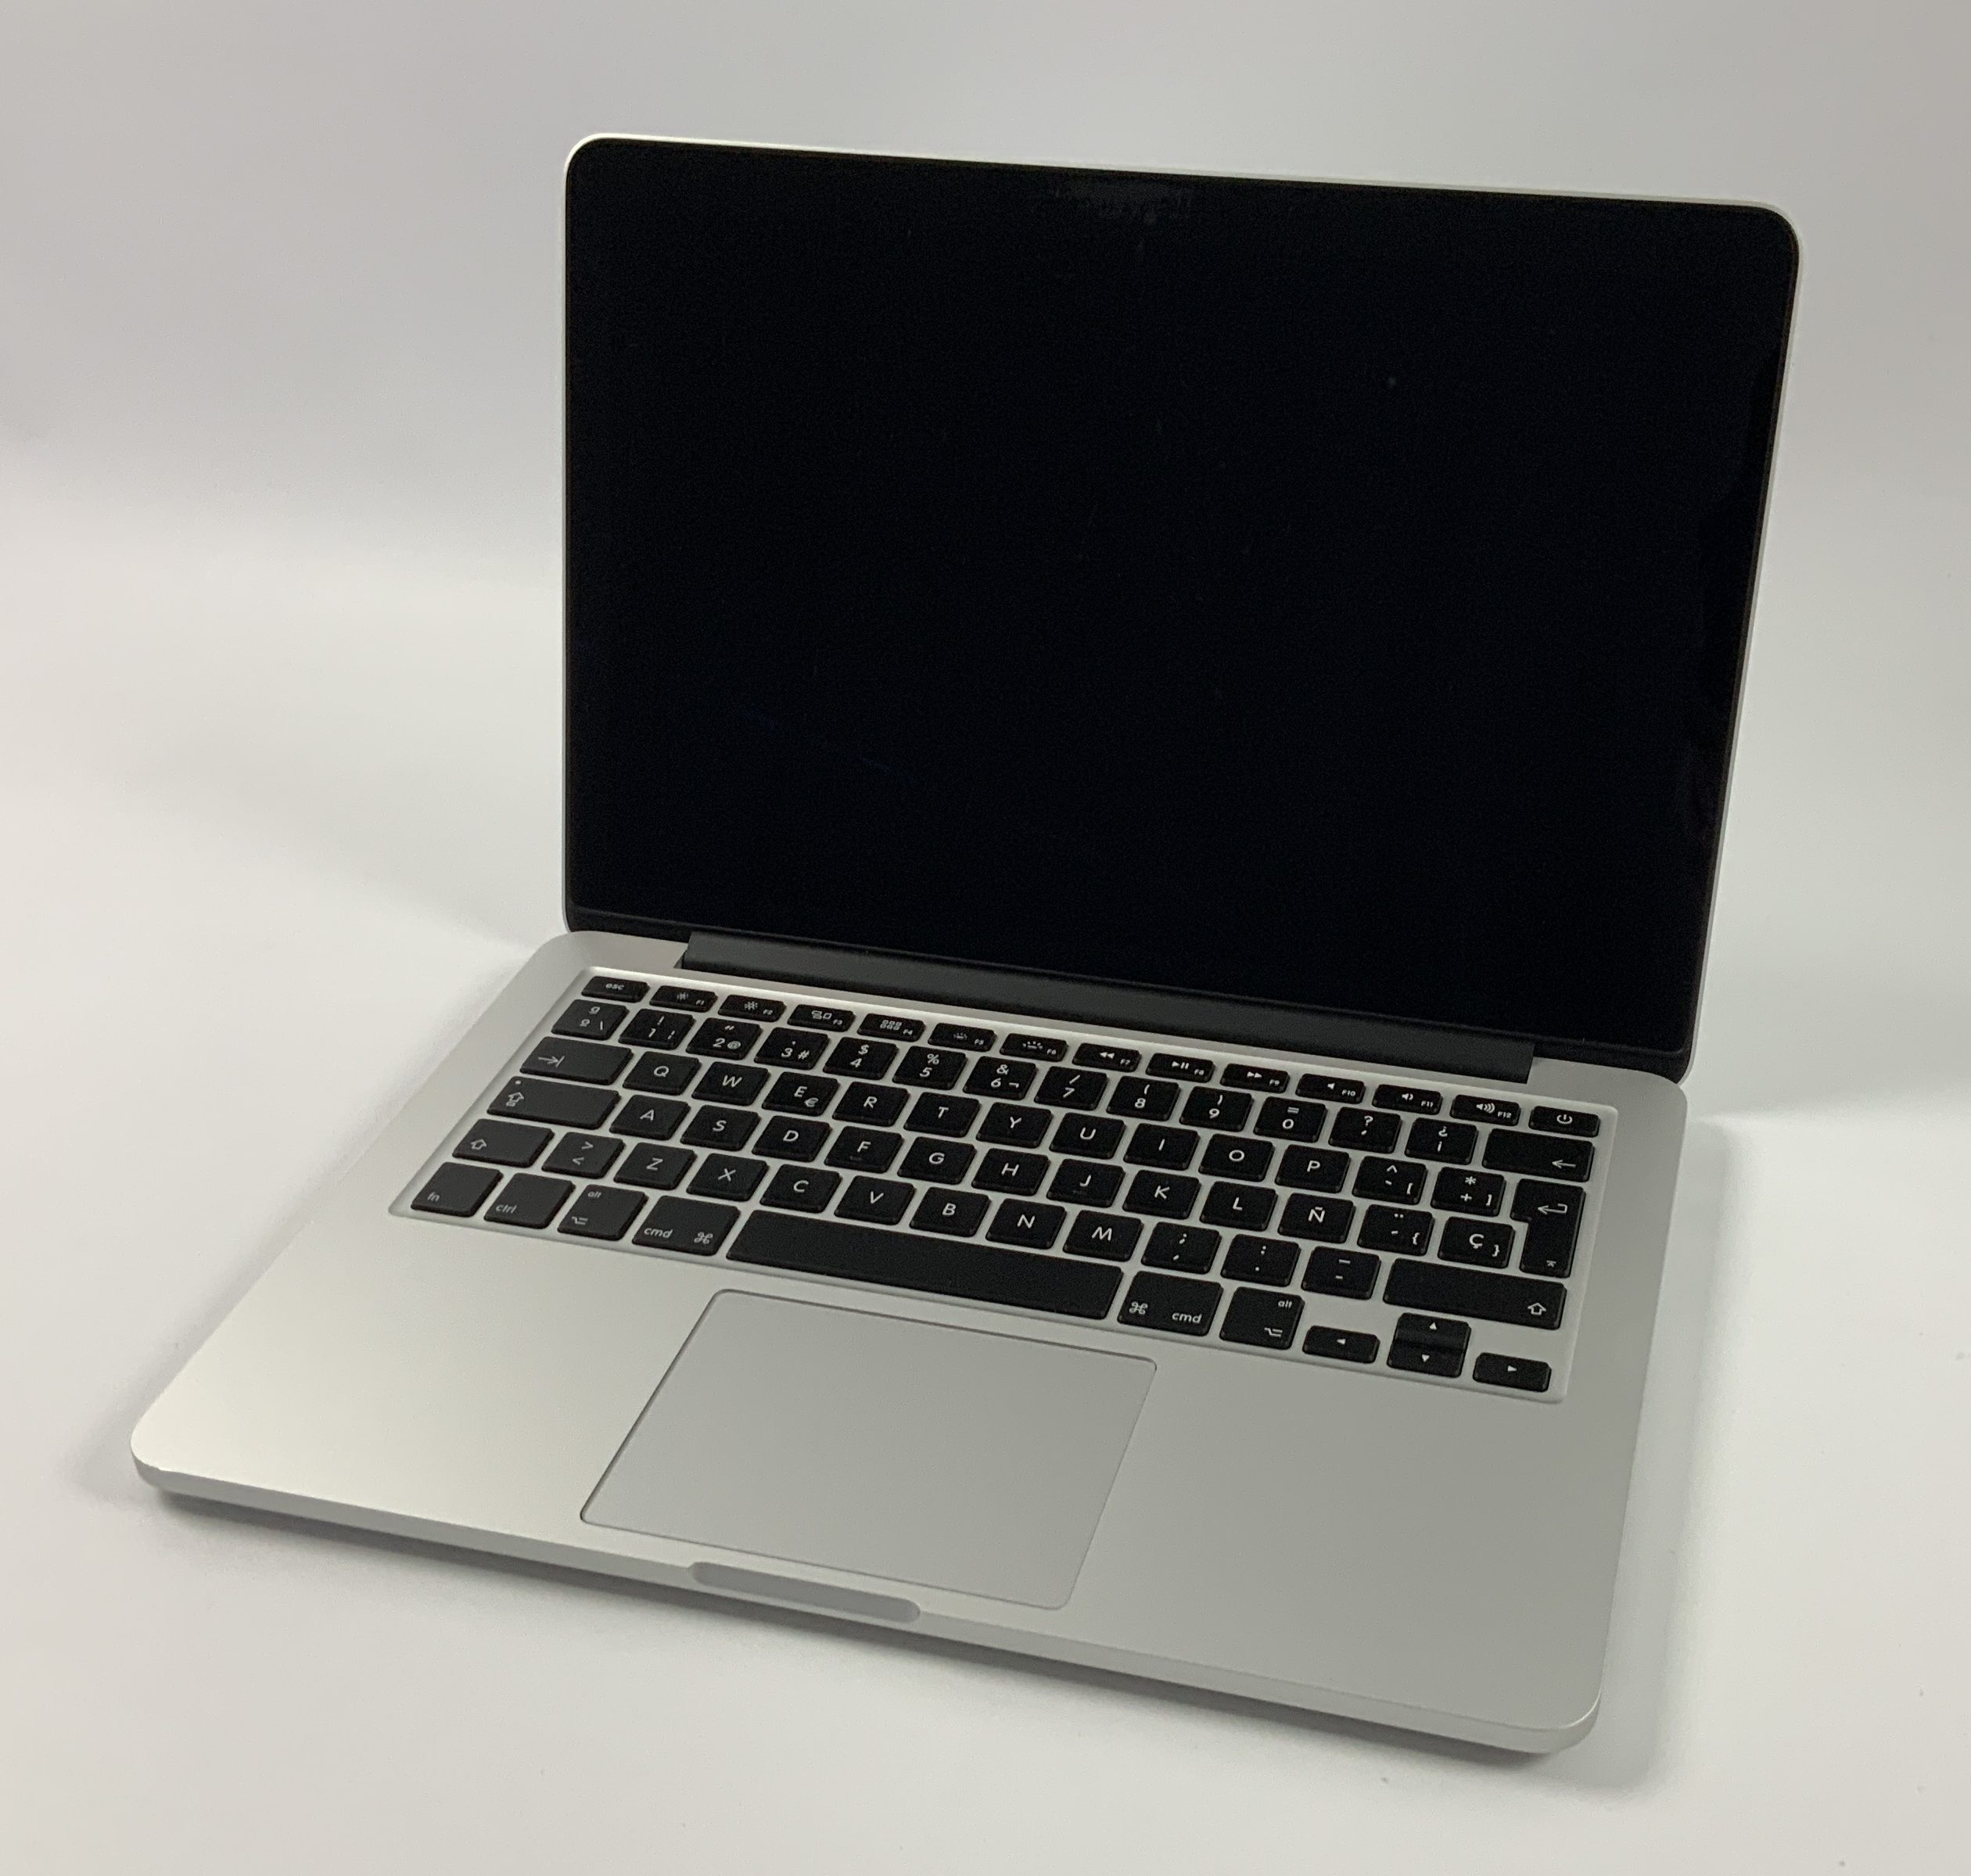 "MacBook Pro Retina 13"" Early 2015 (Intel Core i5 2.7 GHz 8 GB RAM 256 GB SSD), Intel Core i5 2.7 GHz, 8 GB RAM, 256 GB SSD, obraz 1"